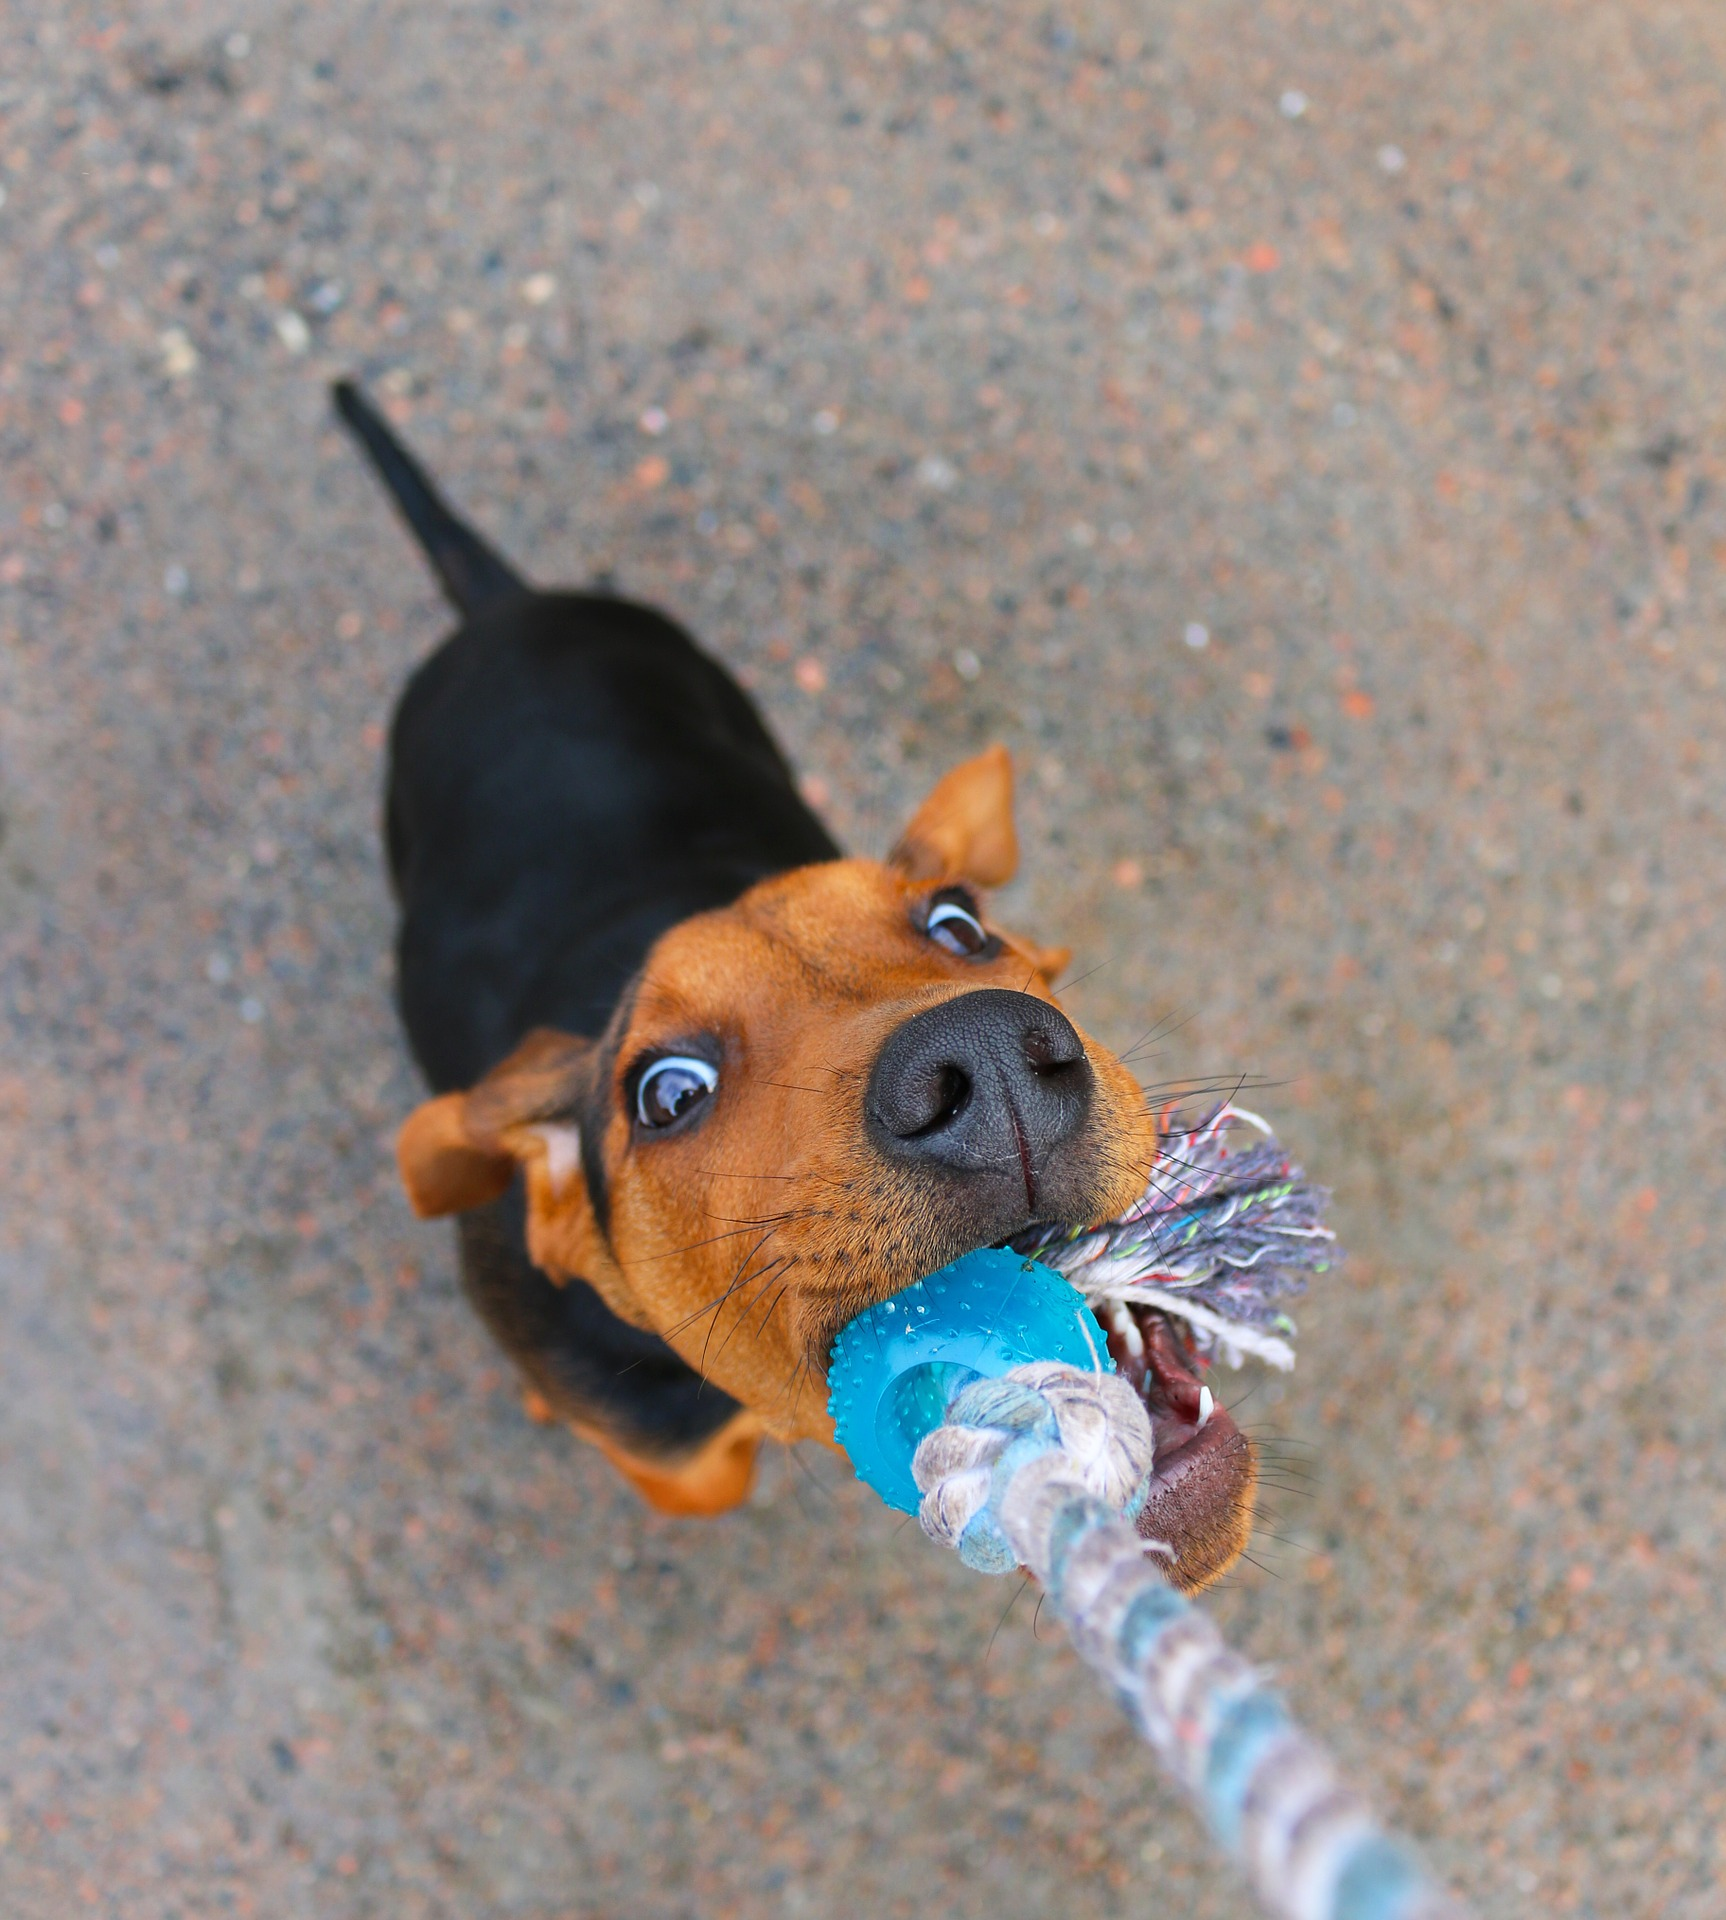 Play tug of war with puppy